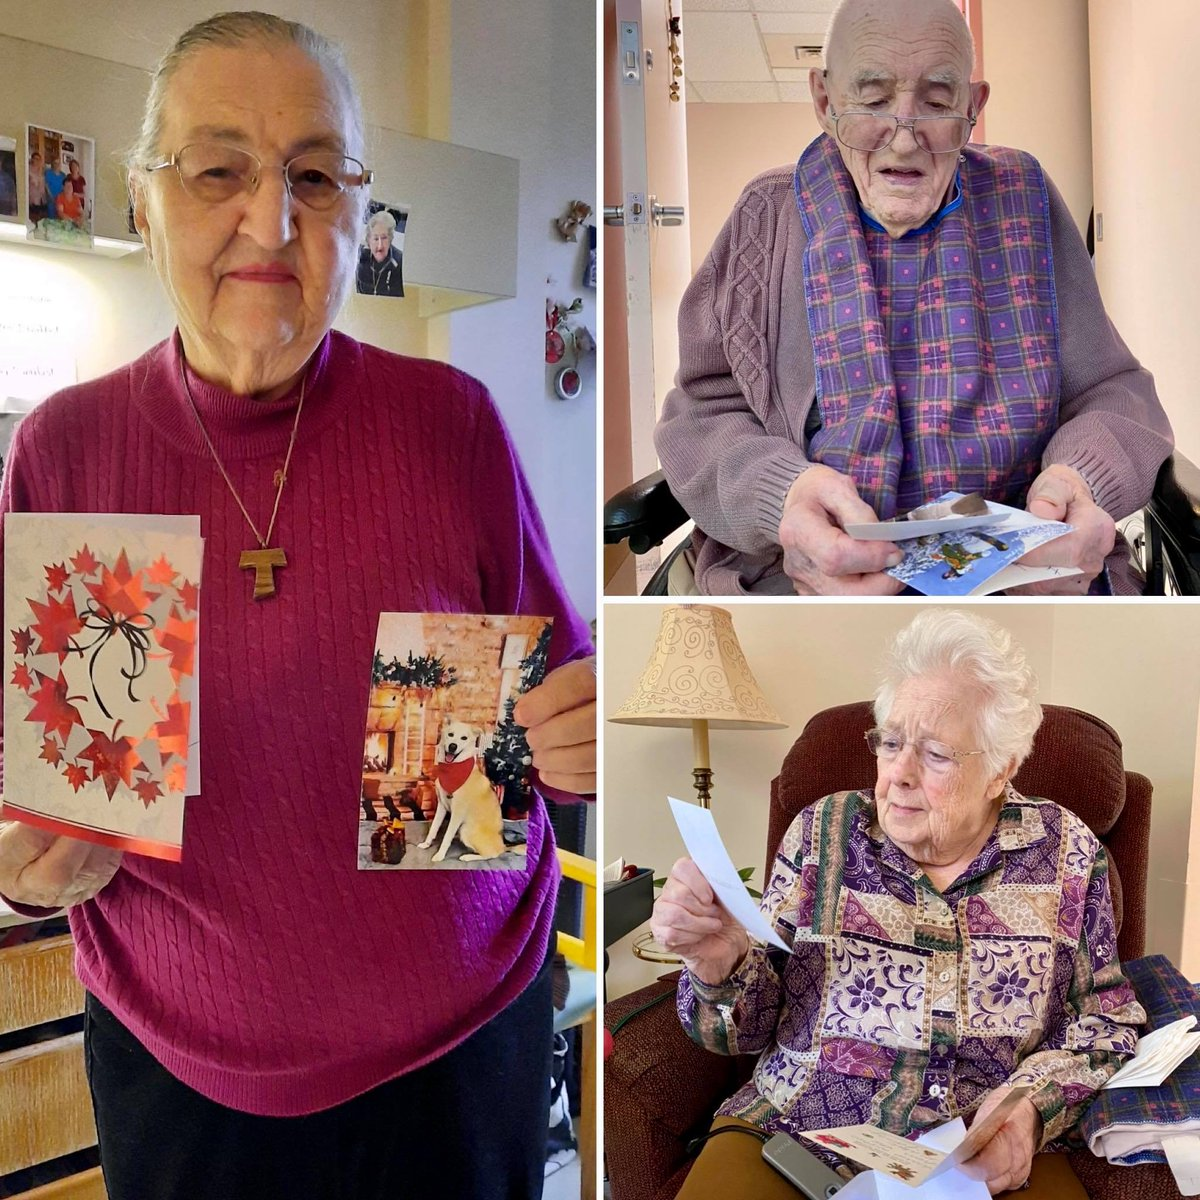 test Twitter Media - Providence Manor is feeling the holiday love thanks to @ROOTS #ygk. Employees surprised every single one of our residents by delivering more than 200 festive cards with personalized notes, pictures & drawings! Thank you for this amazing gift and for spreading some holiday cheer! https://t.co/r2VAZheEoD